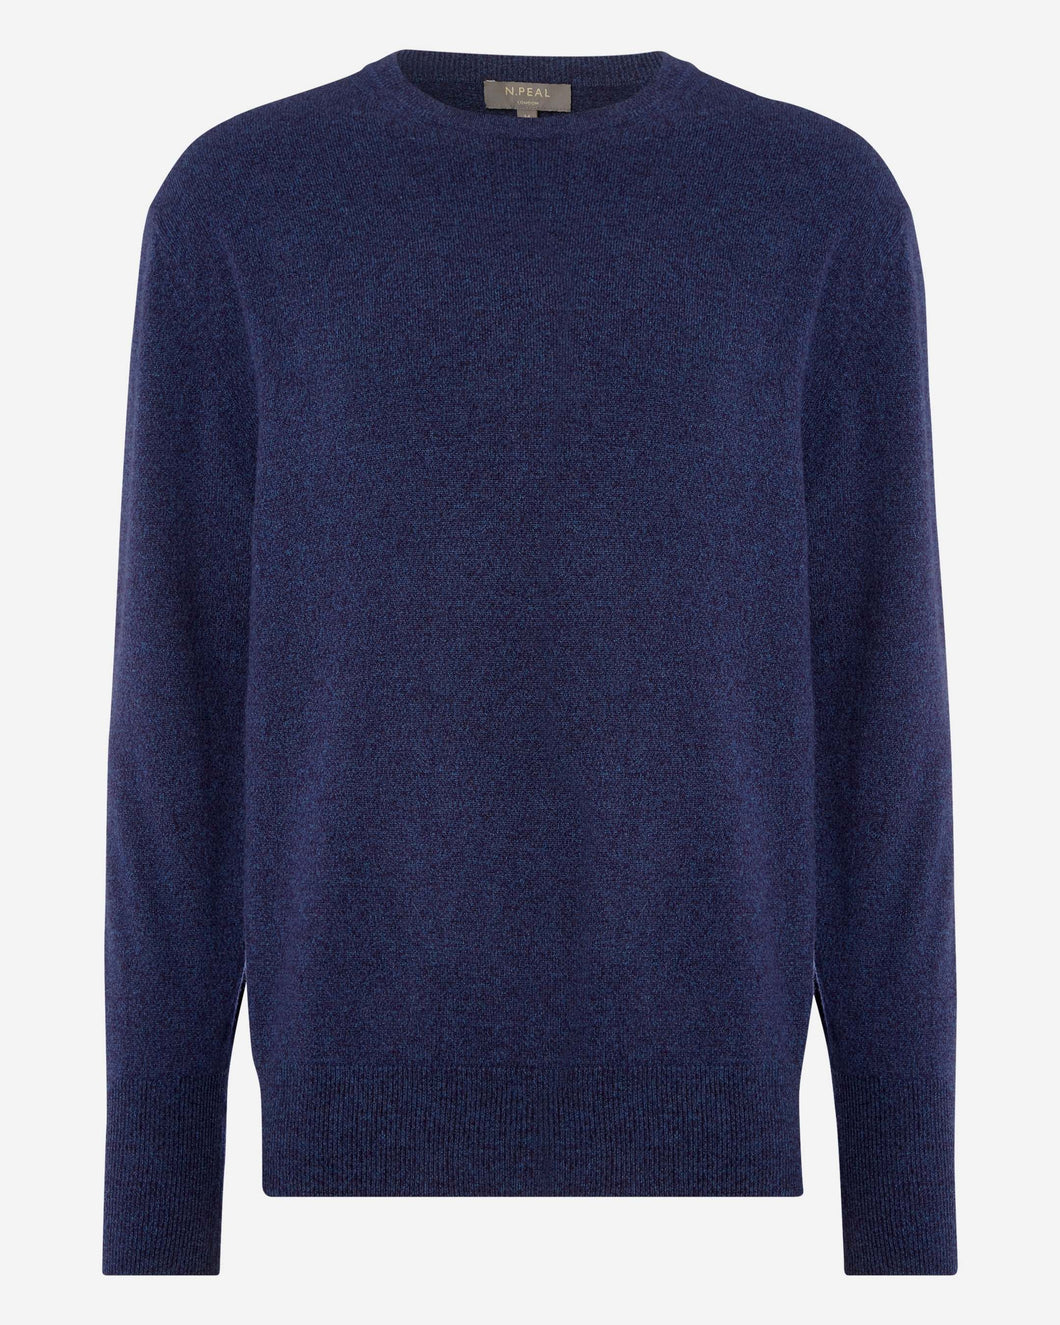 The Oxford Round Neck 1ply Cashmere Sweater Imperial Blue